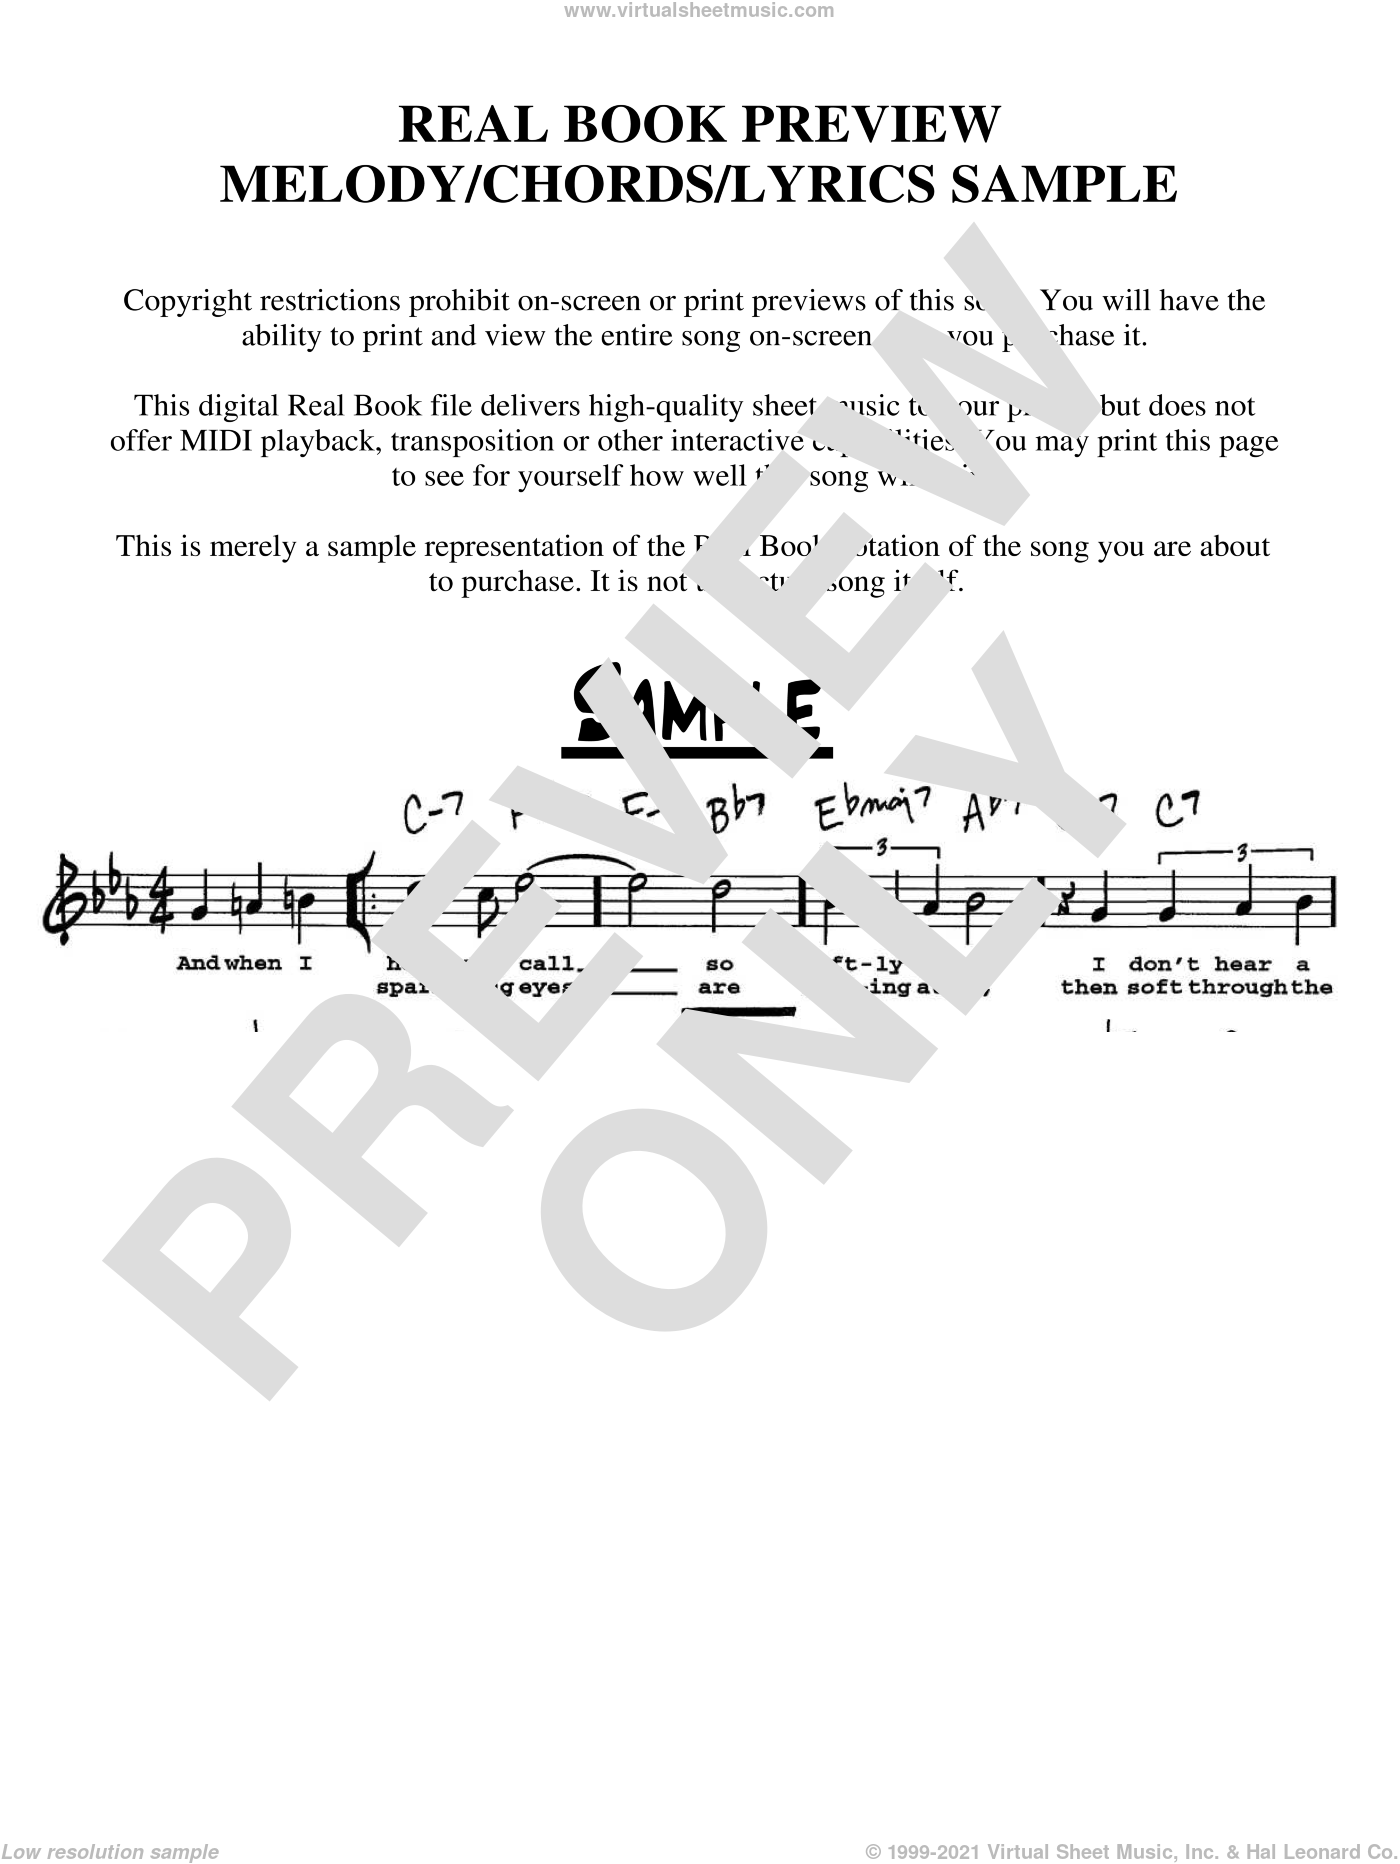 After You've Gone sheet music for voice and other instruments  by Sophie Tucker, Henry Creamer and Turner Layton, intermediate skill level